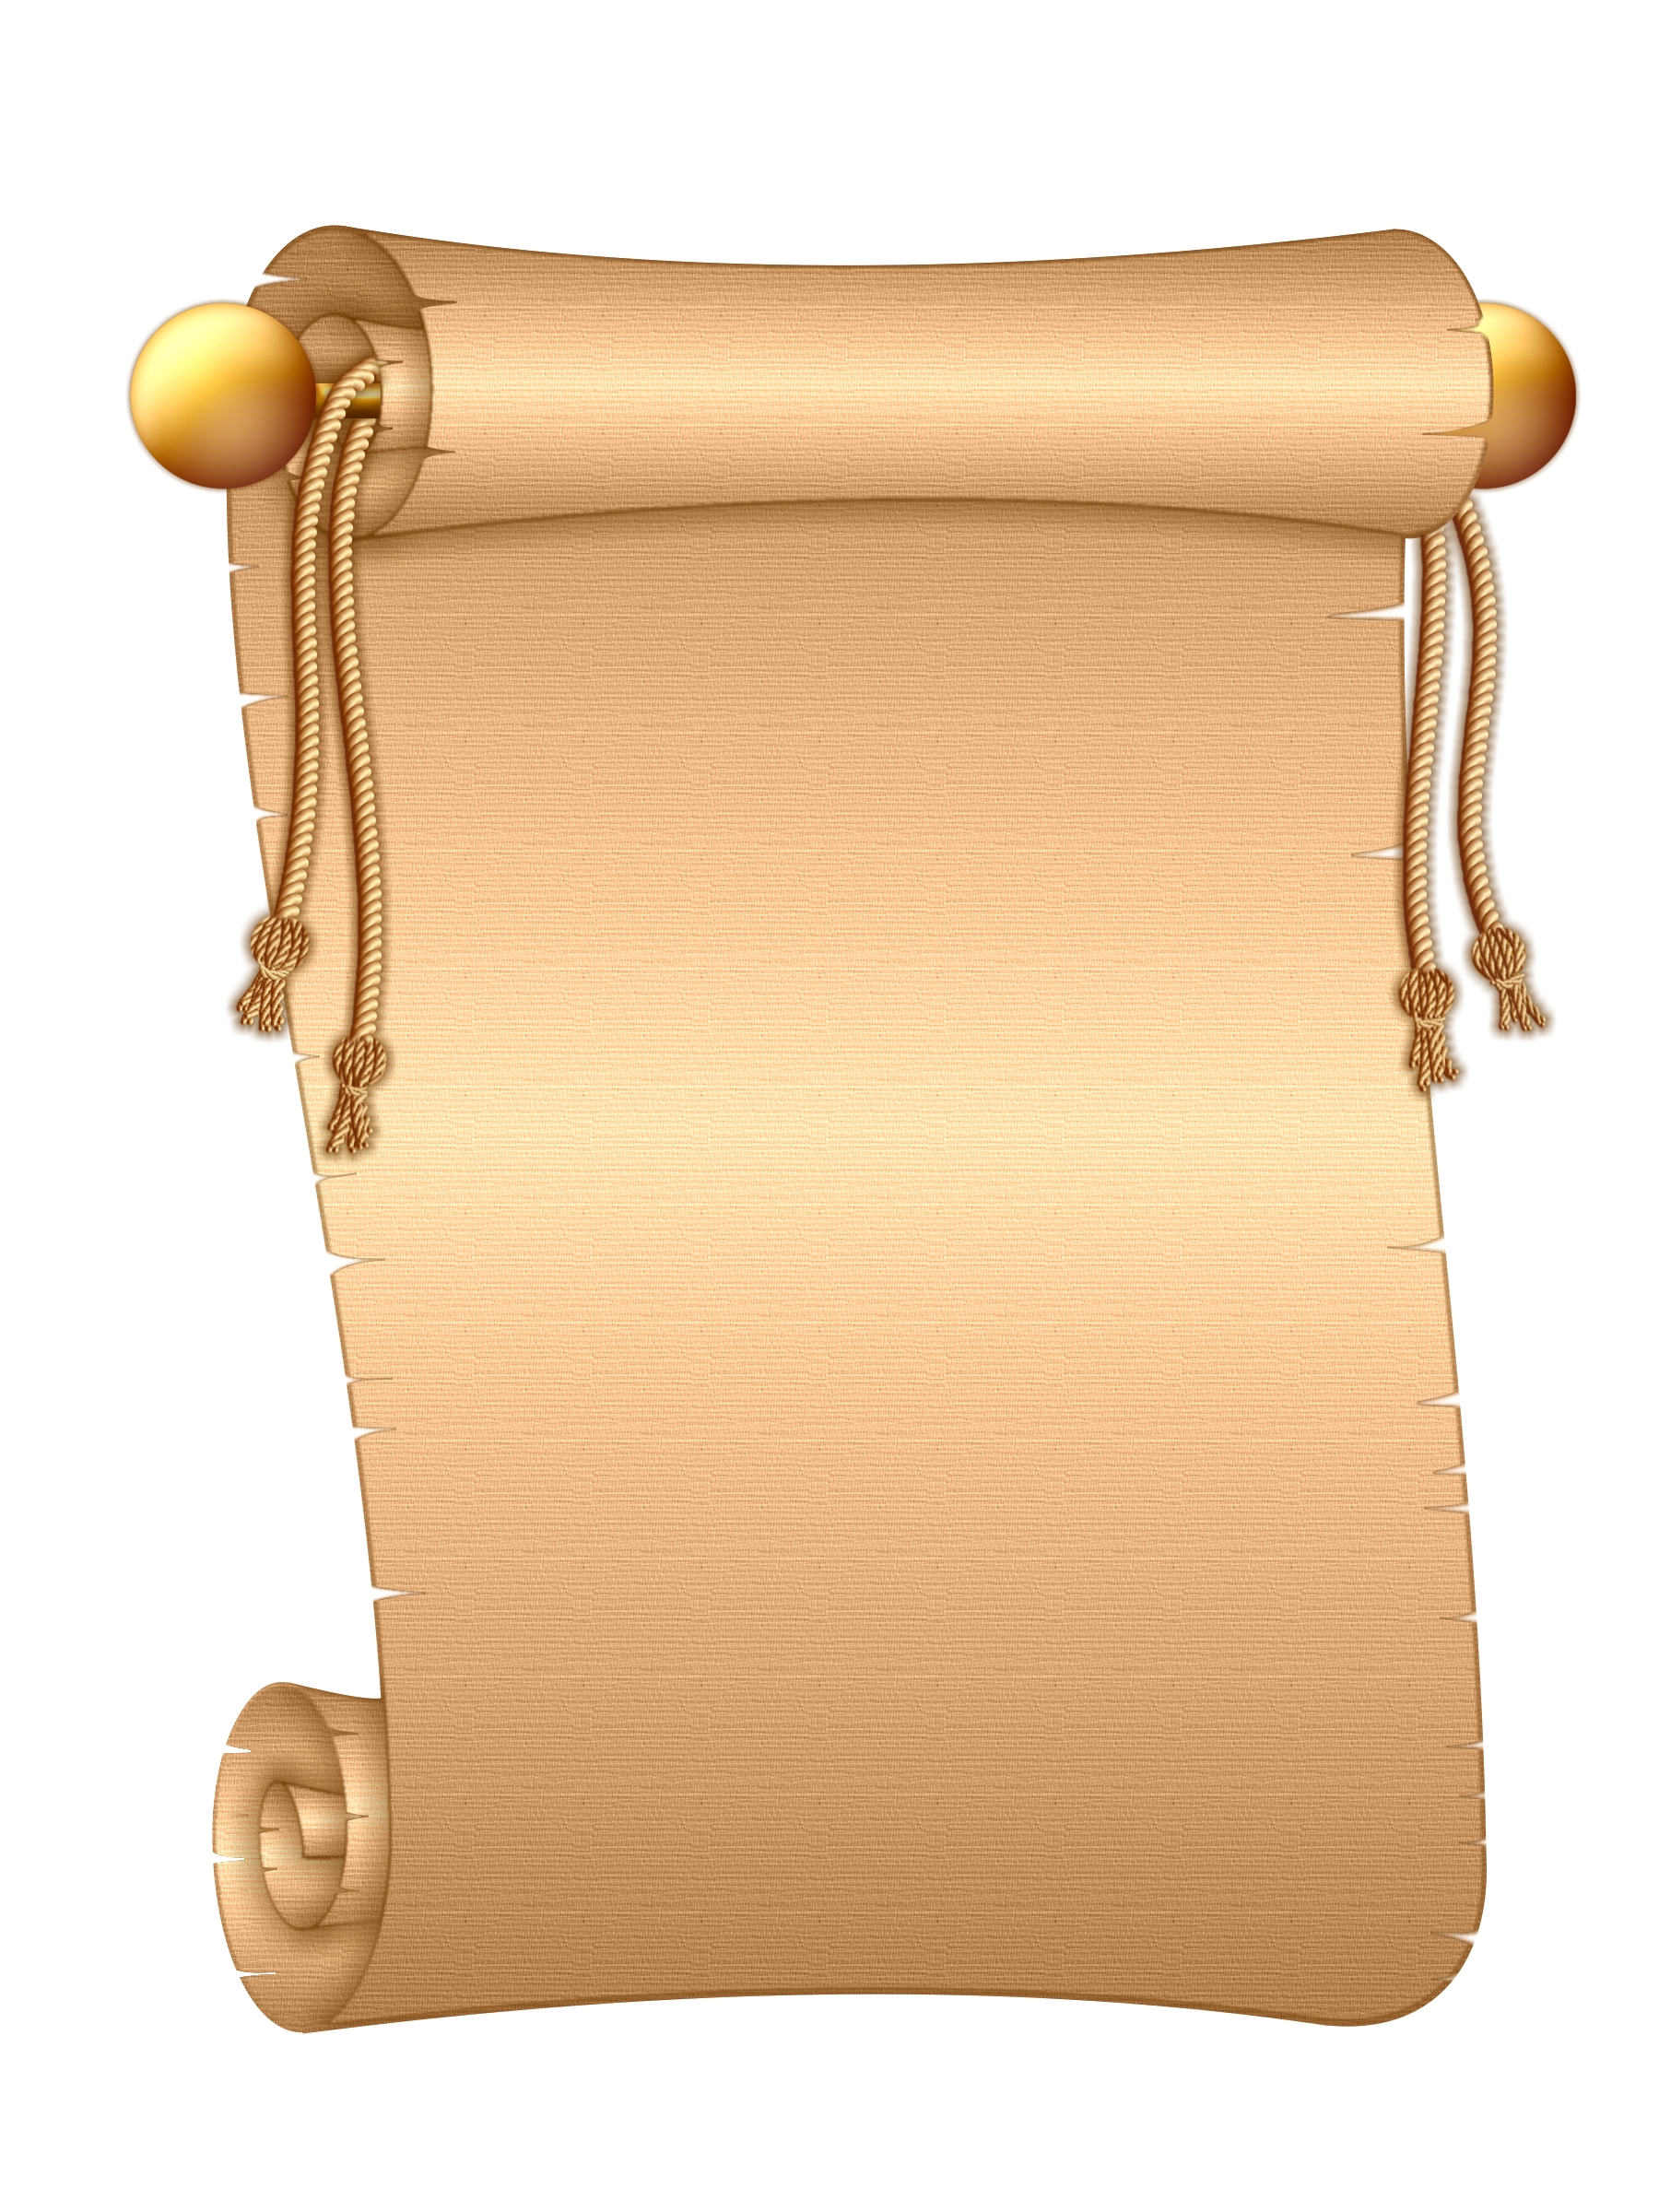 Ancient Letter Roll Clipart - ClipartXtras